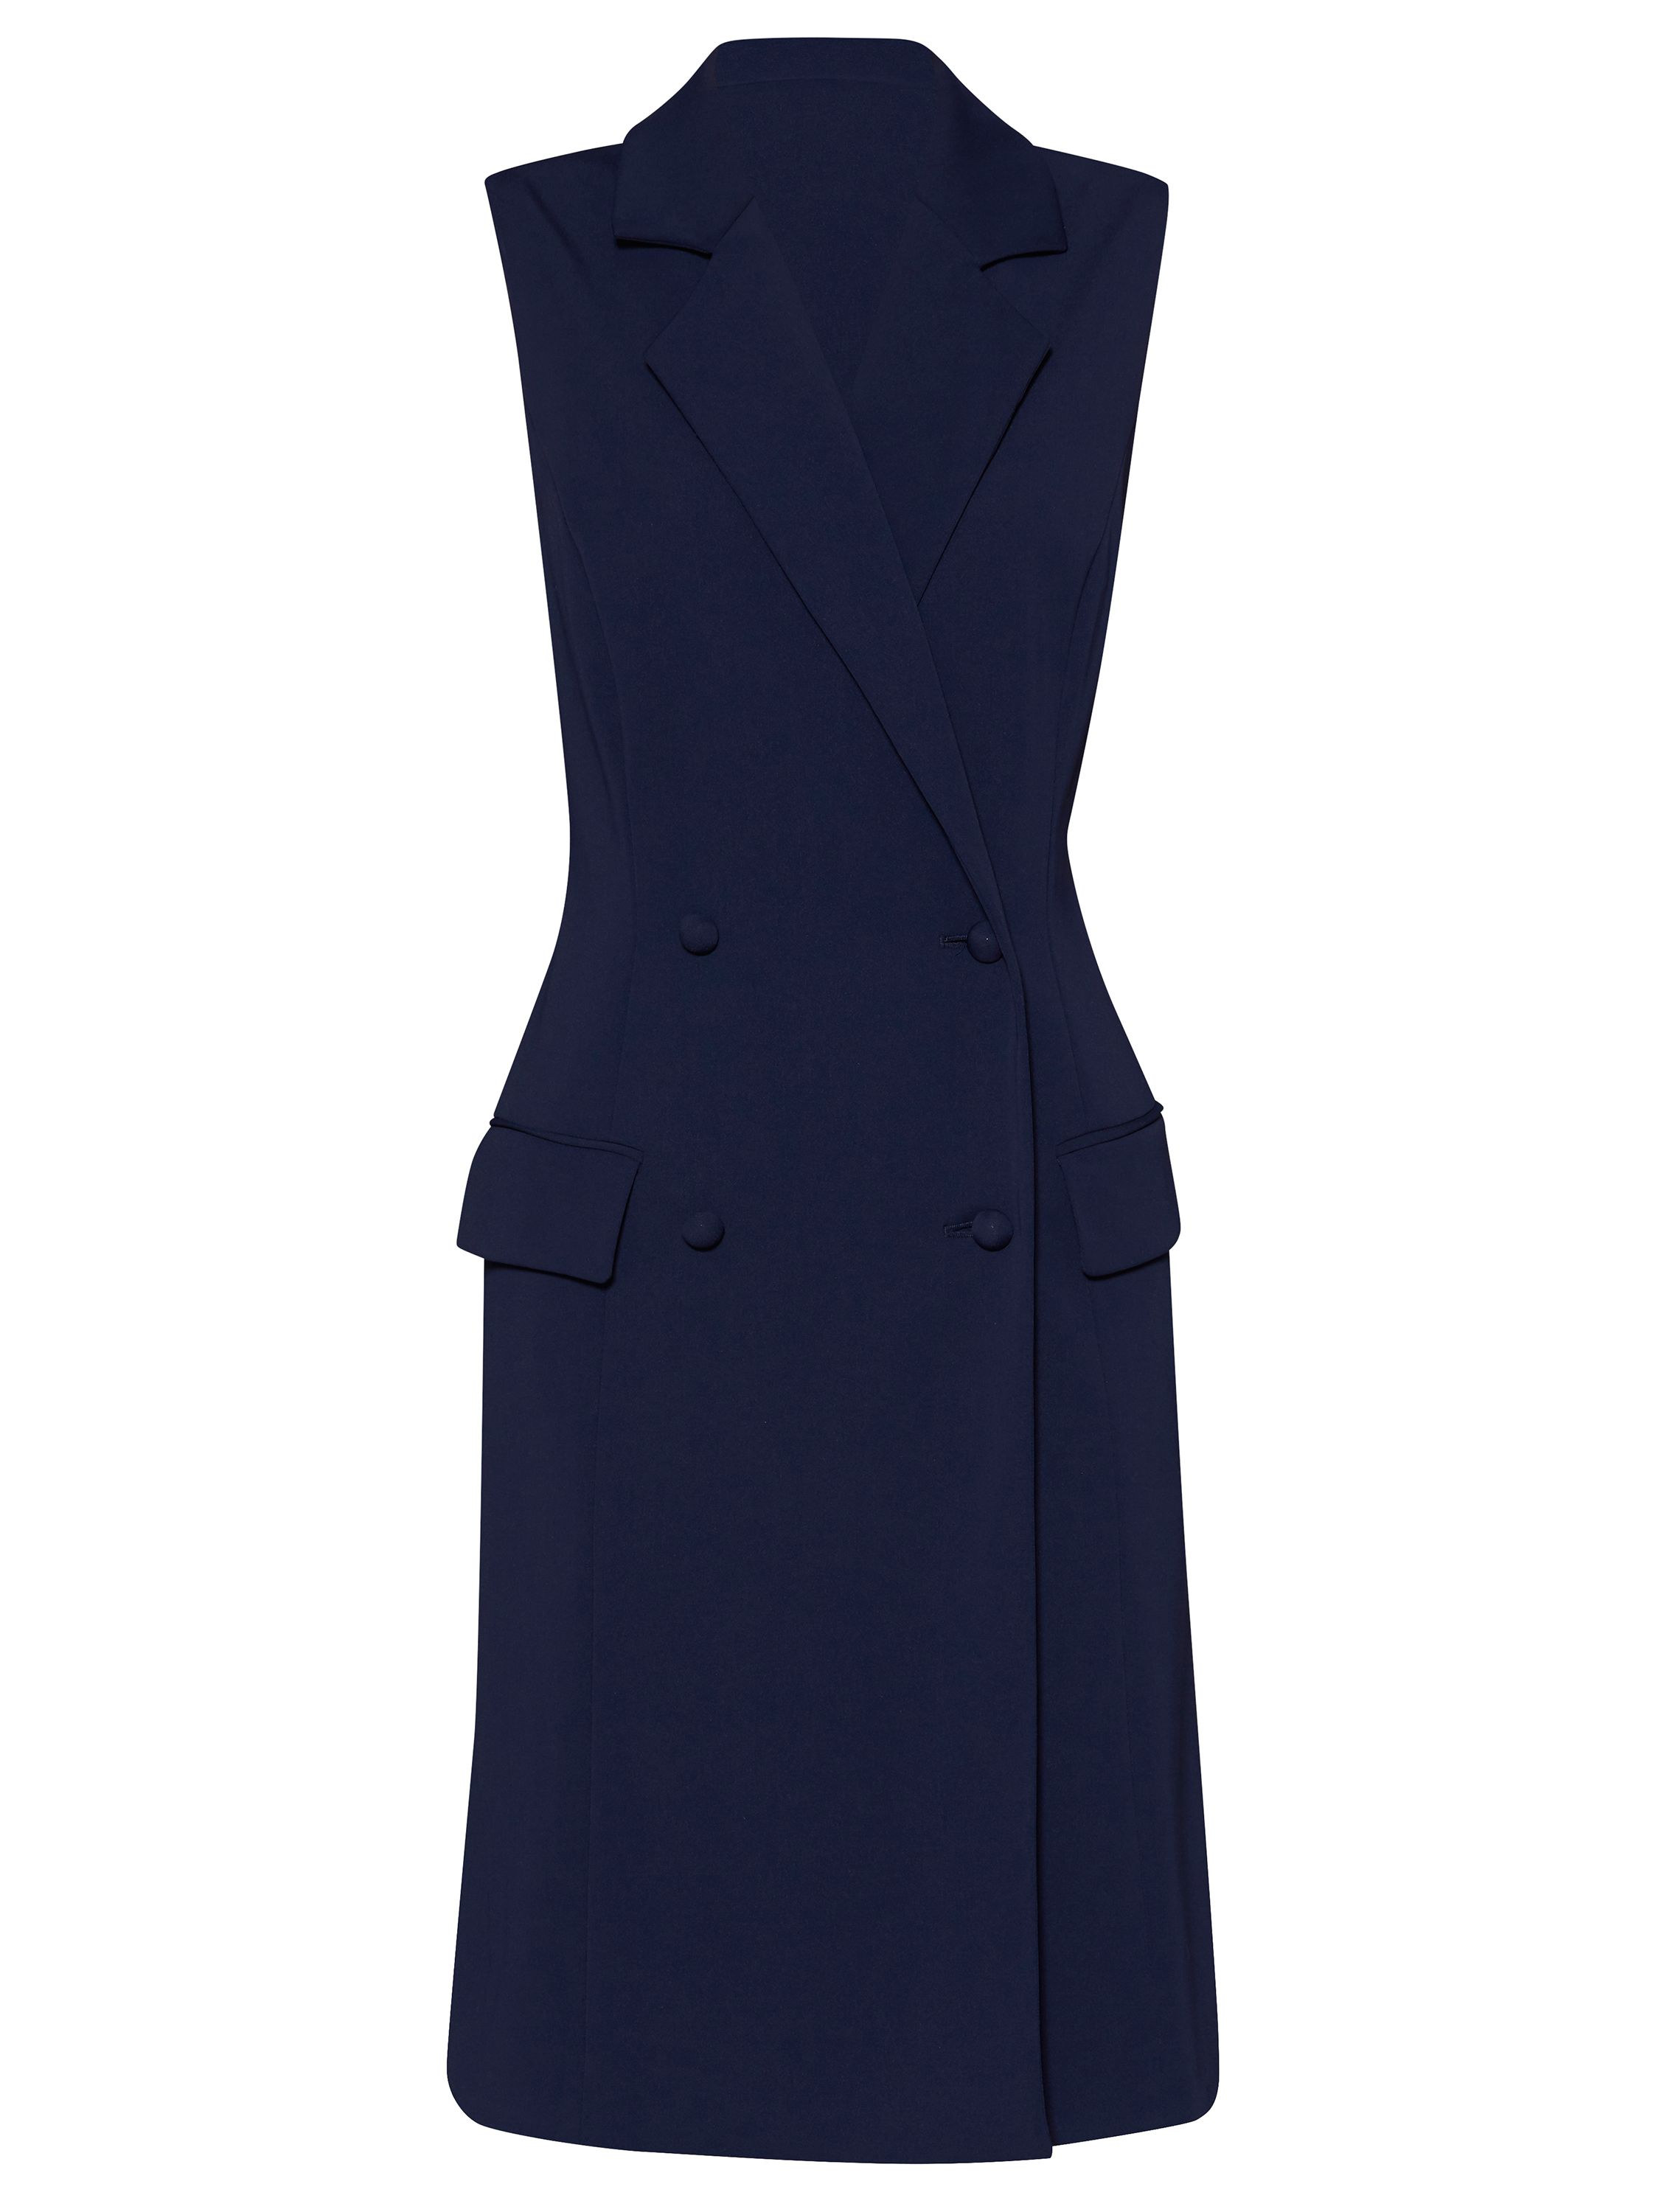 Gina Bacconi Crepe double breasted coat dress, Blue